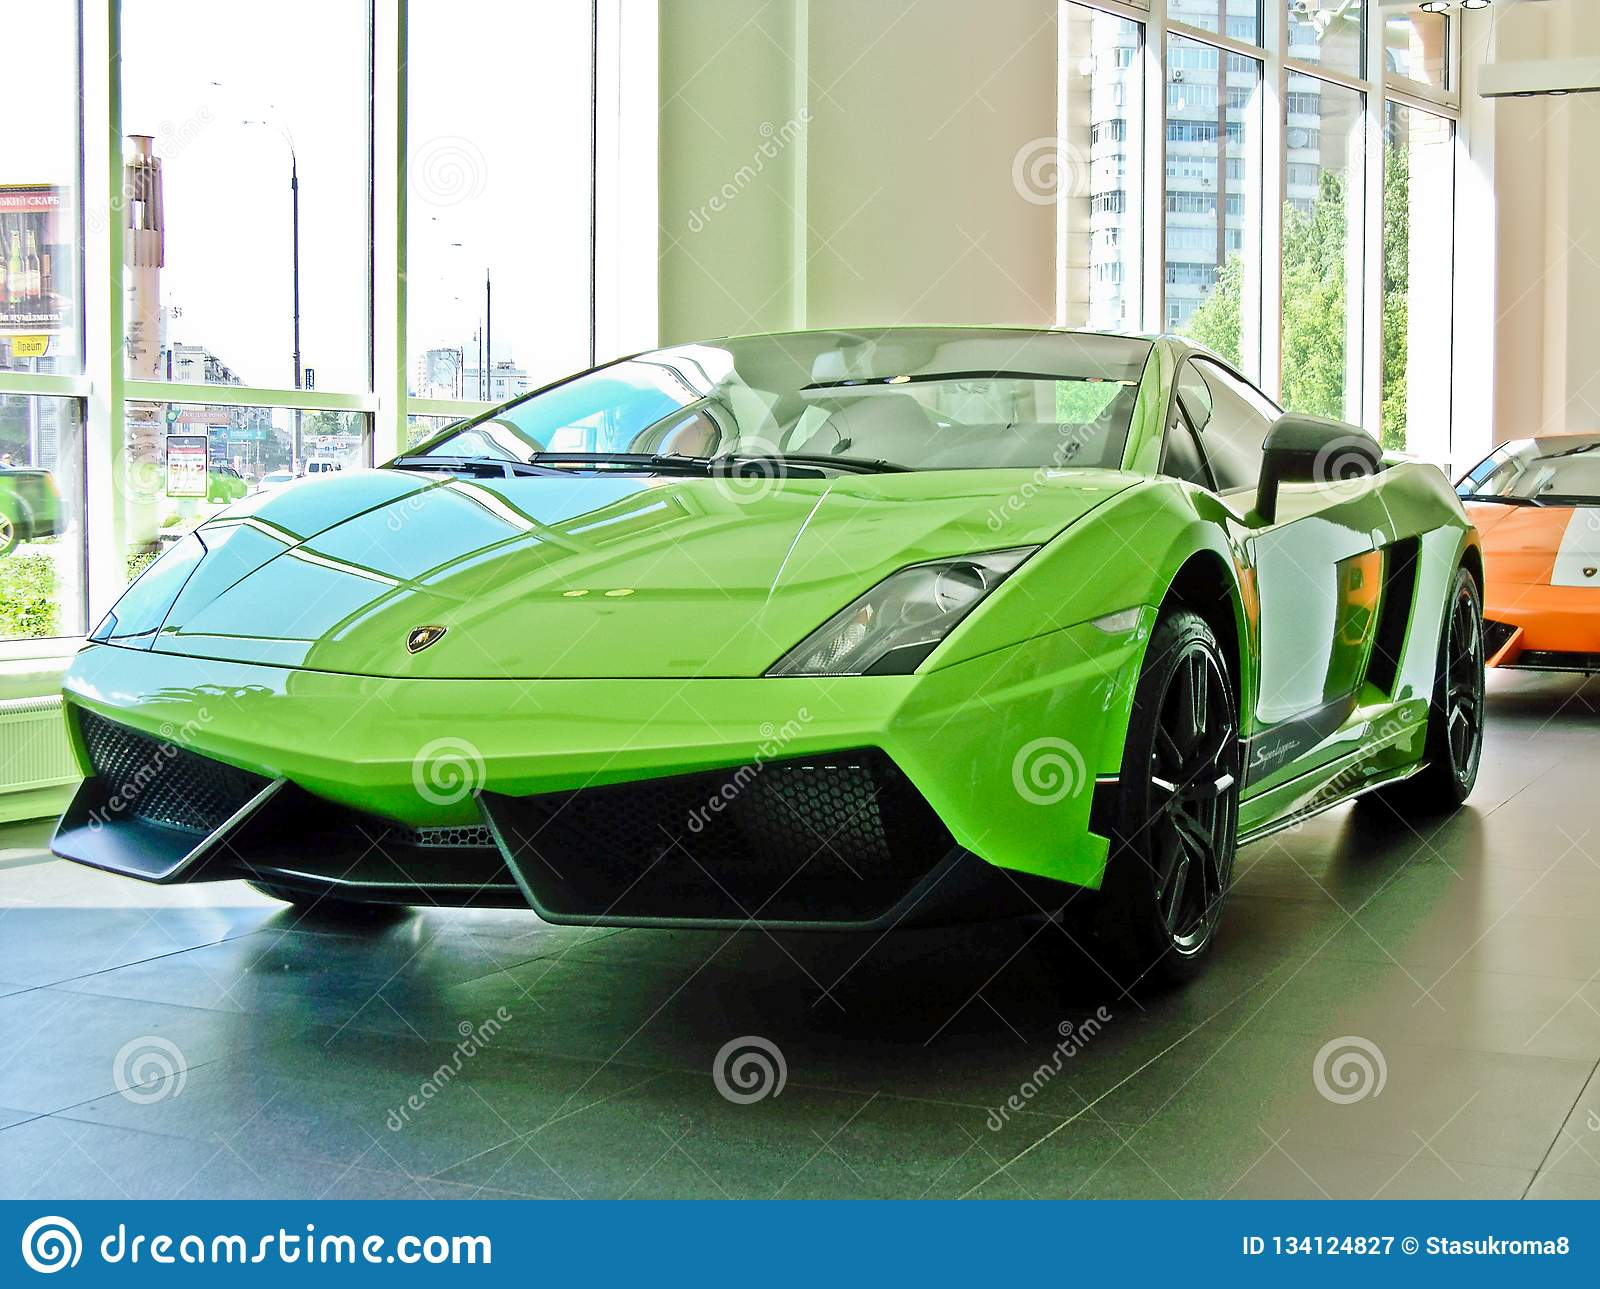 17 February 2011 Ukraine Kiev Lamborghini Gallardo Lp 570 4